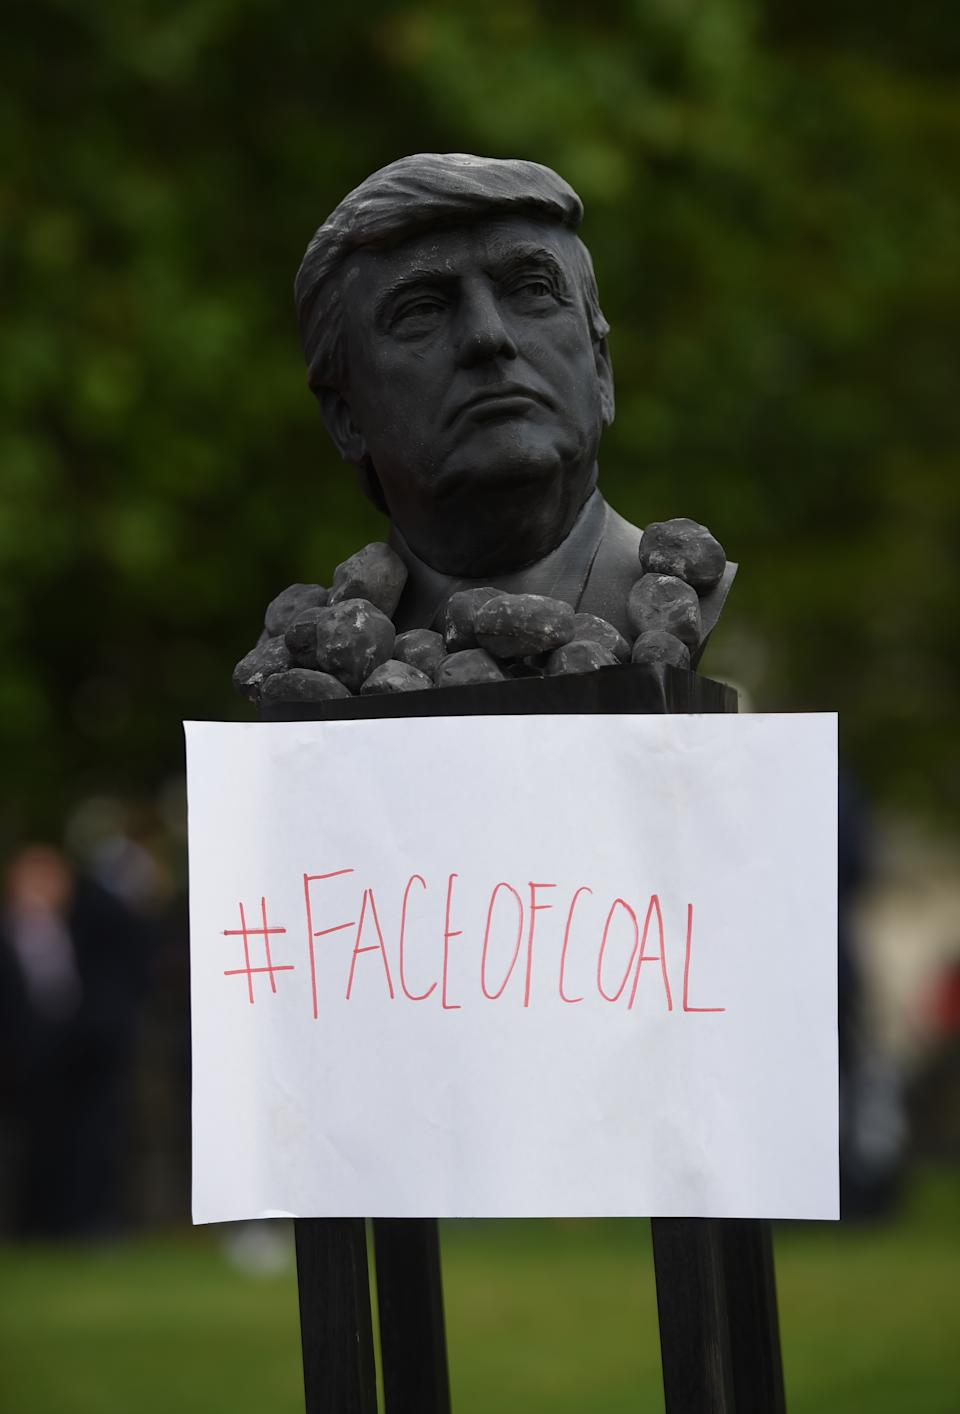 A Trump bust with protestors outside Buckingham Palace, London, during the first day of a state visit to the UK by US President Donald Trump.